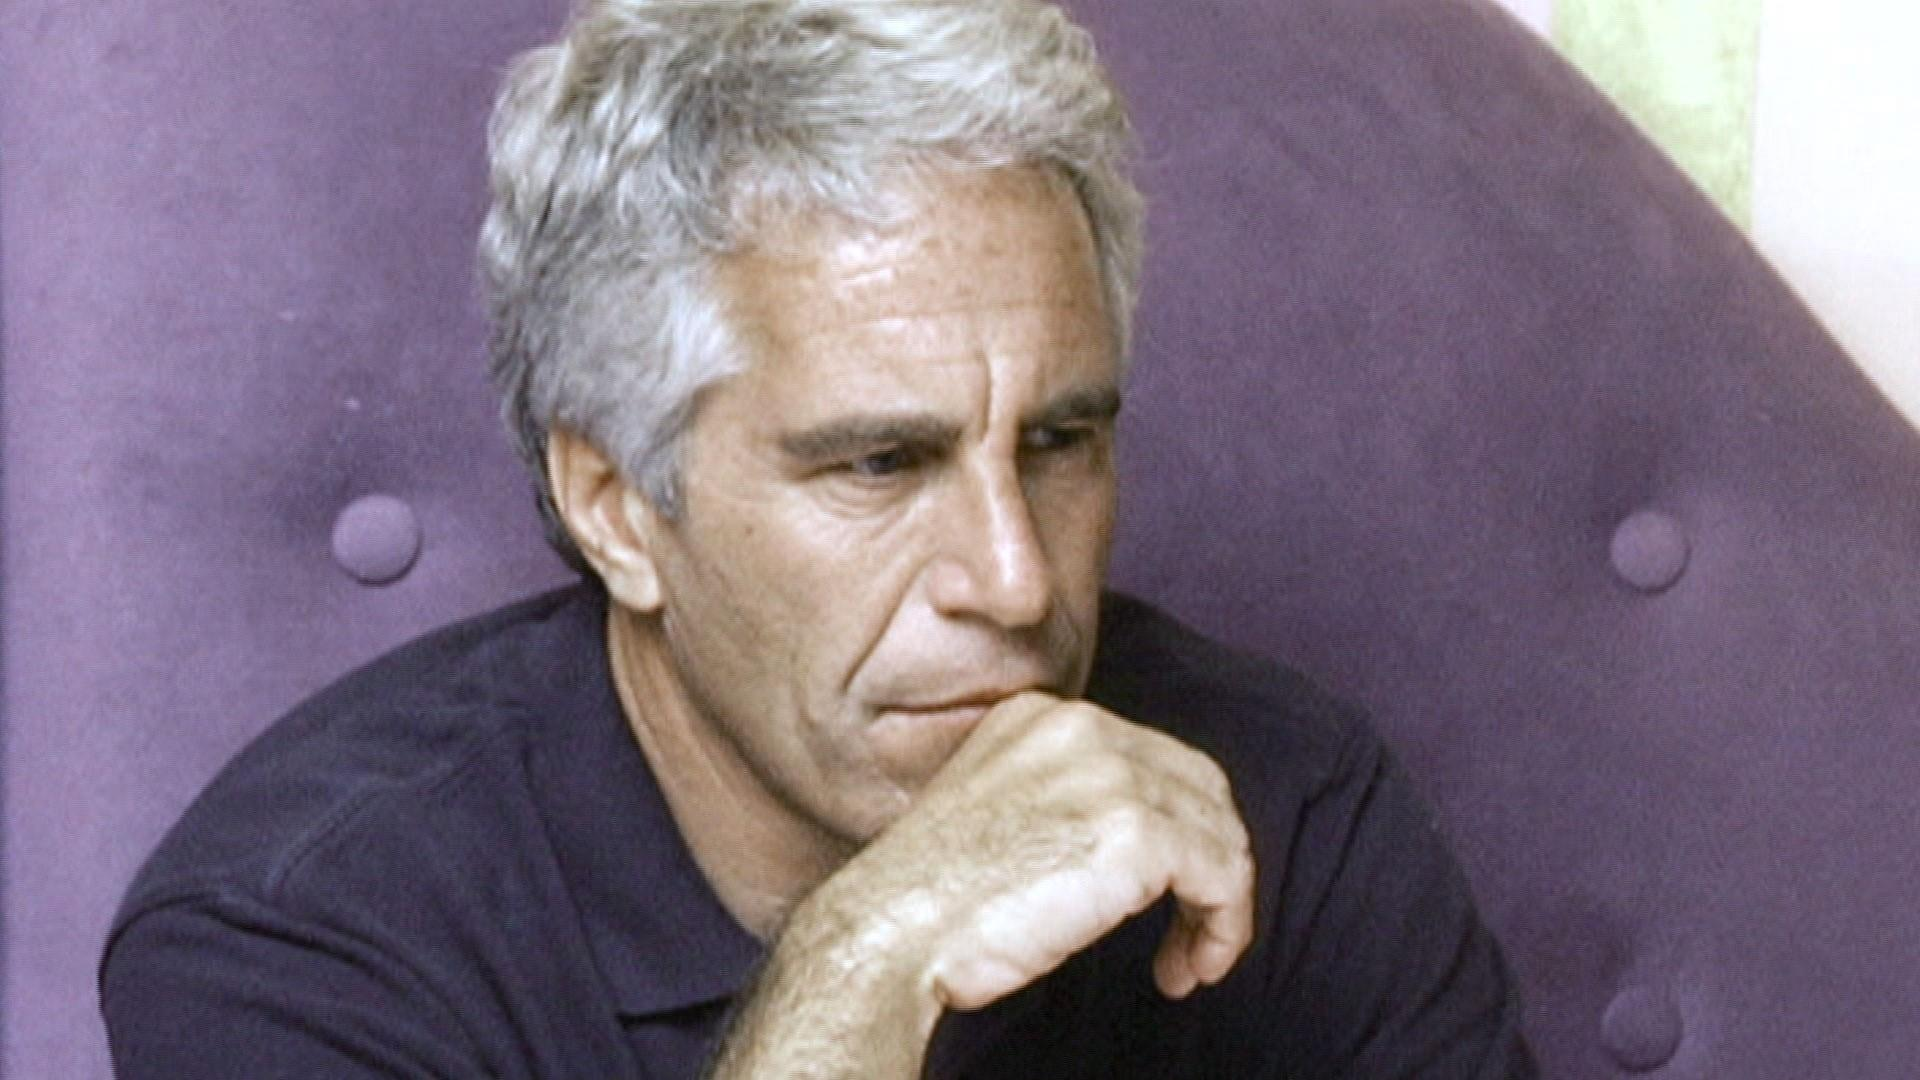 Prison experts are stunned and angry that Jeffrey Epstein was taken off suicide watch